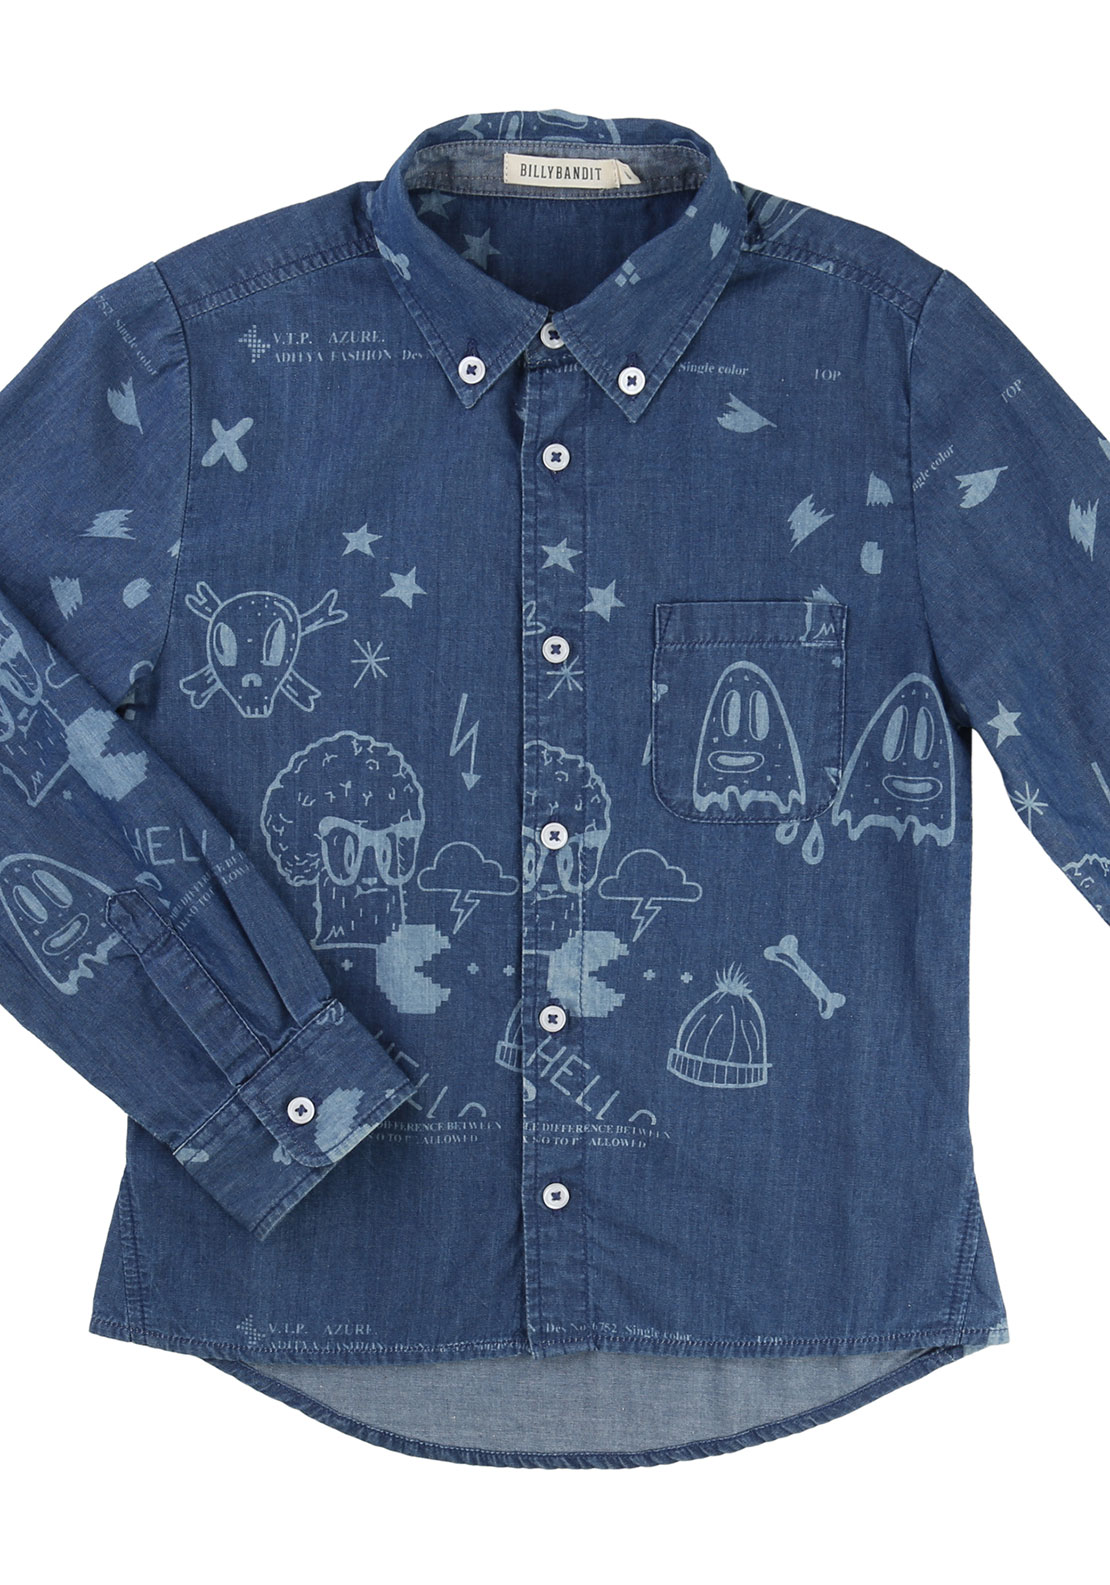 Billybandit Arcade Denim Shirt, Blue